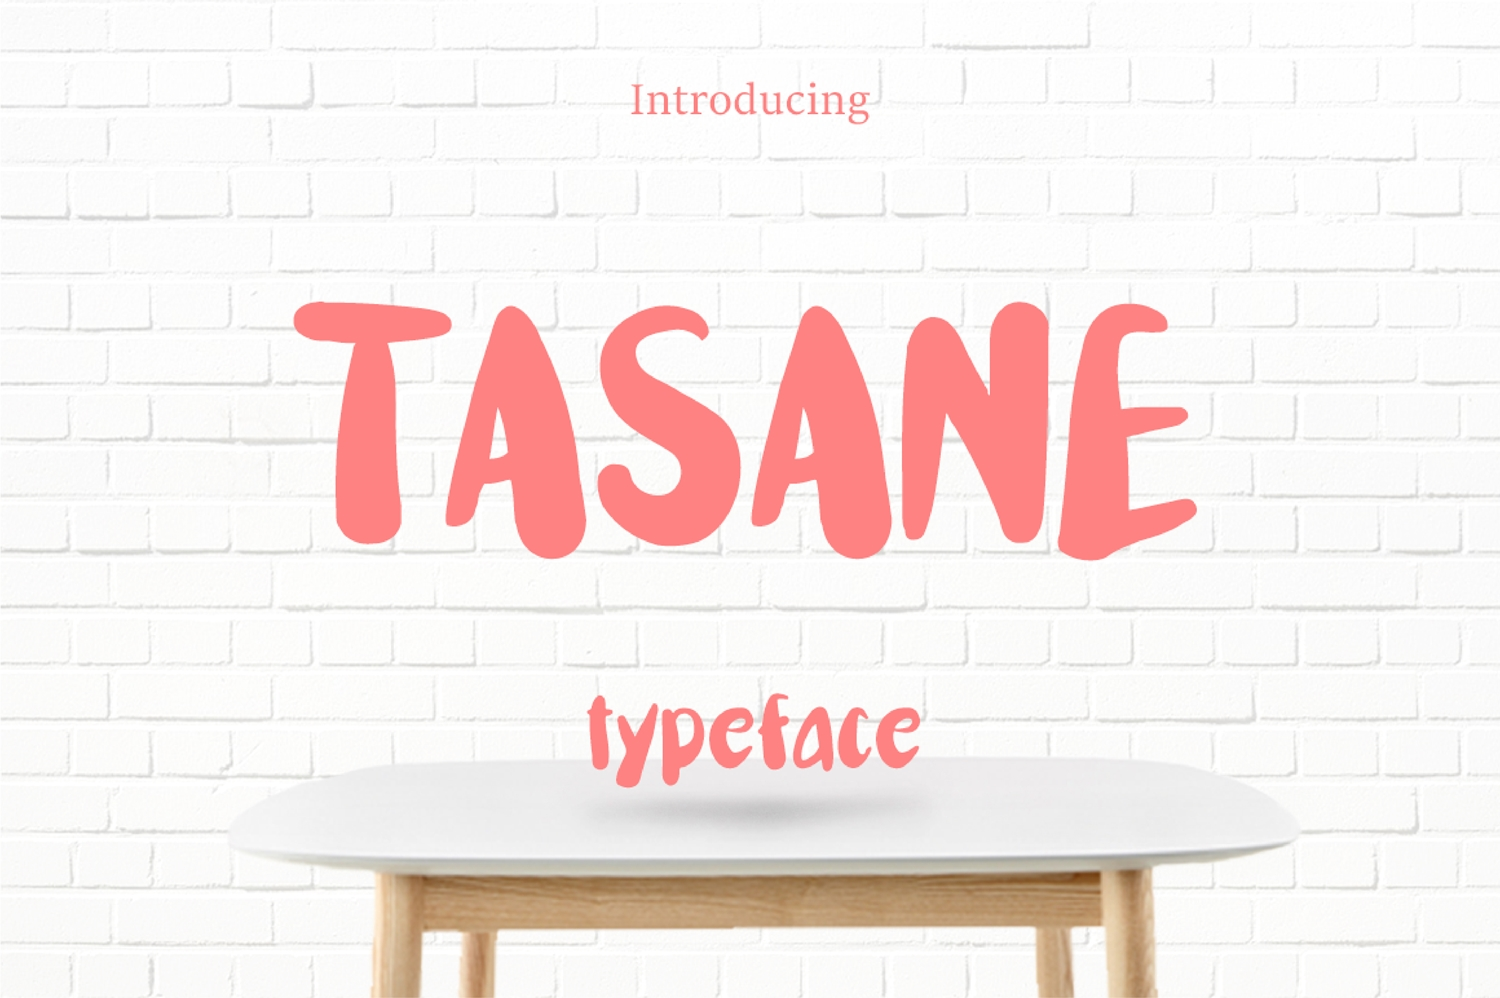 TASANE example image 1